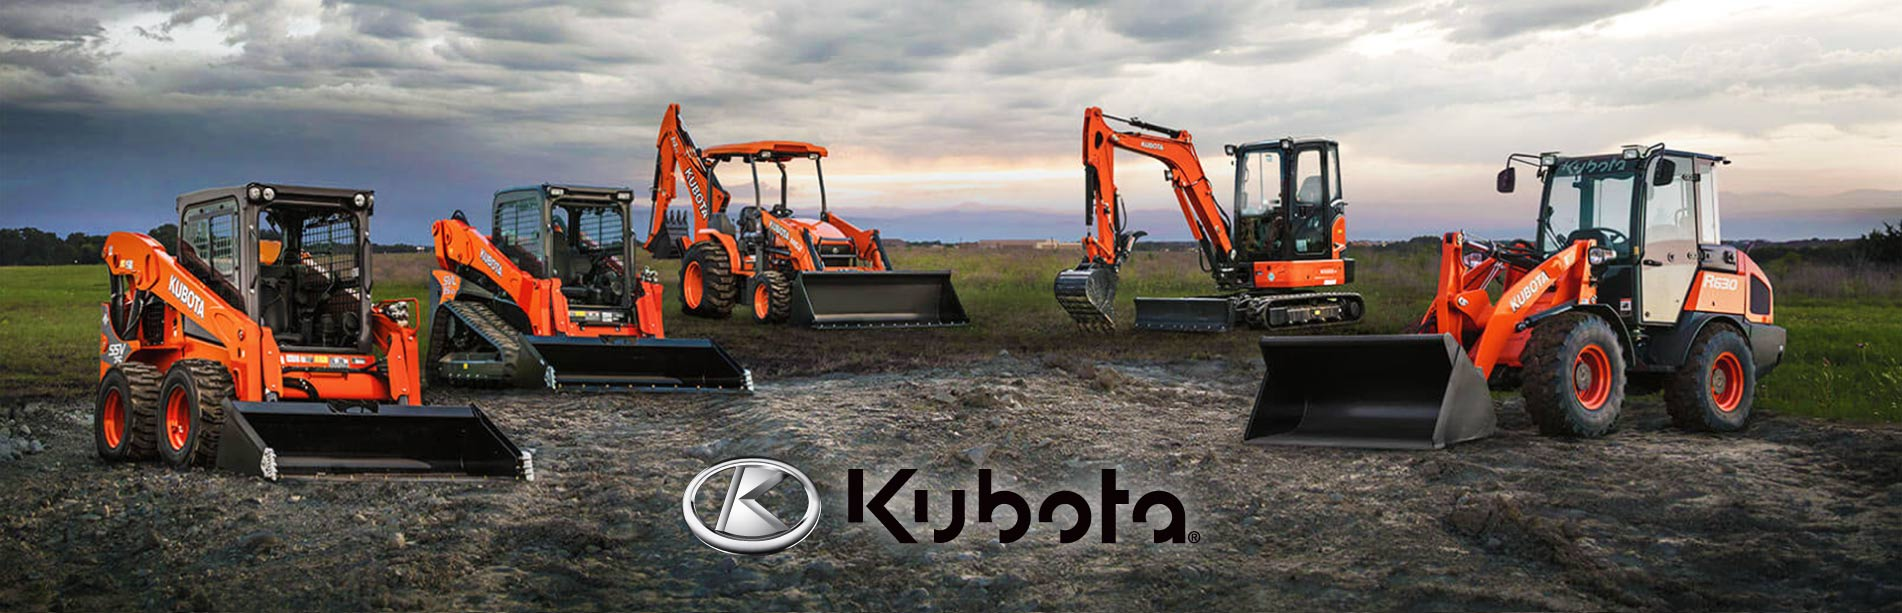 Kubota Construction Equipment banner